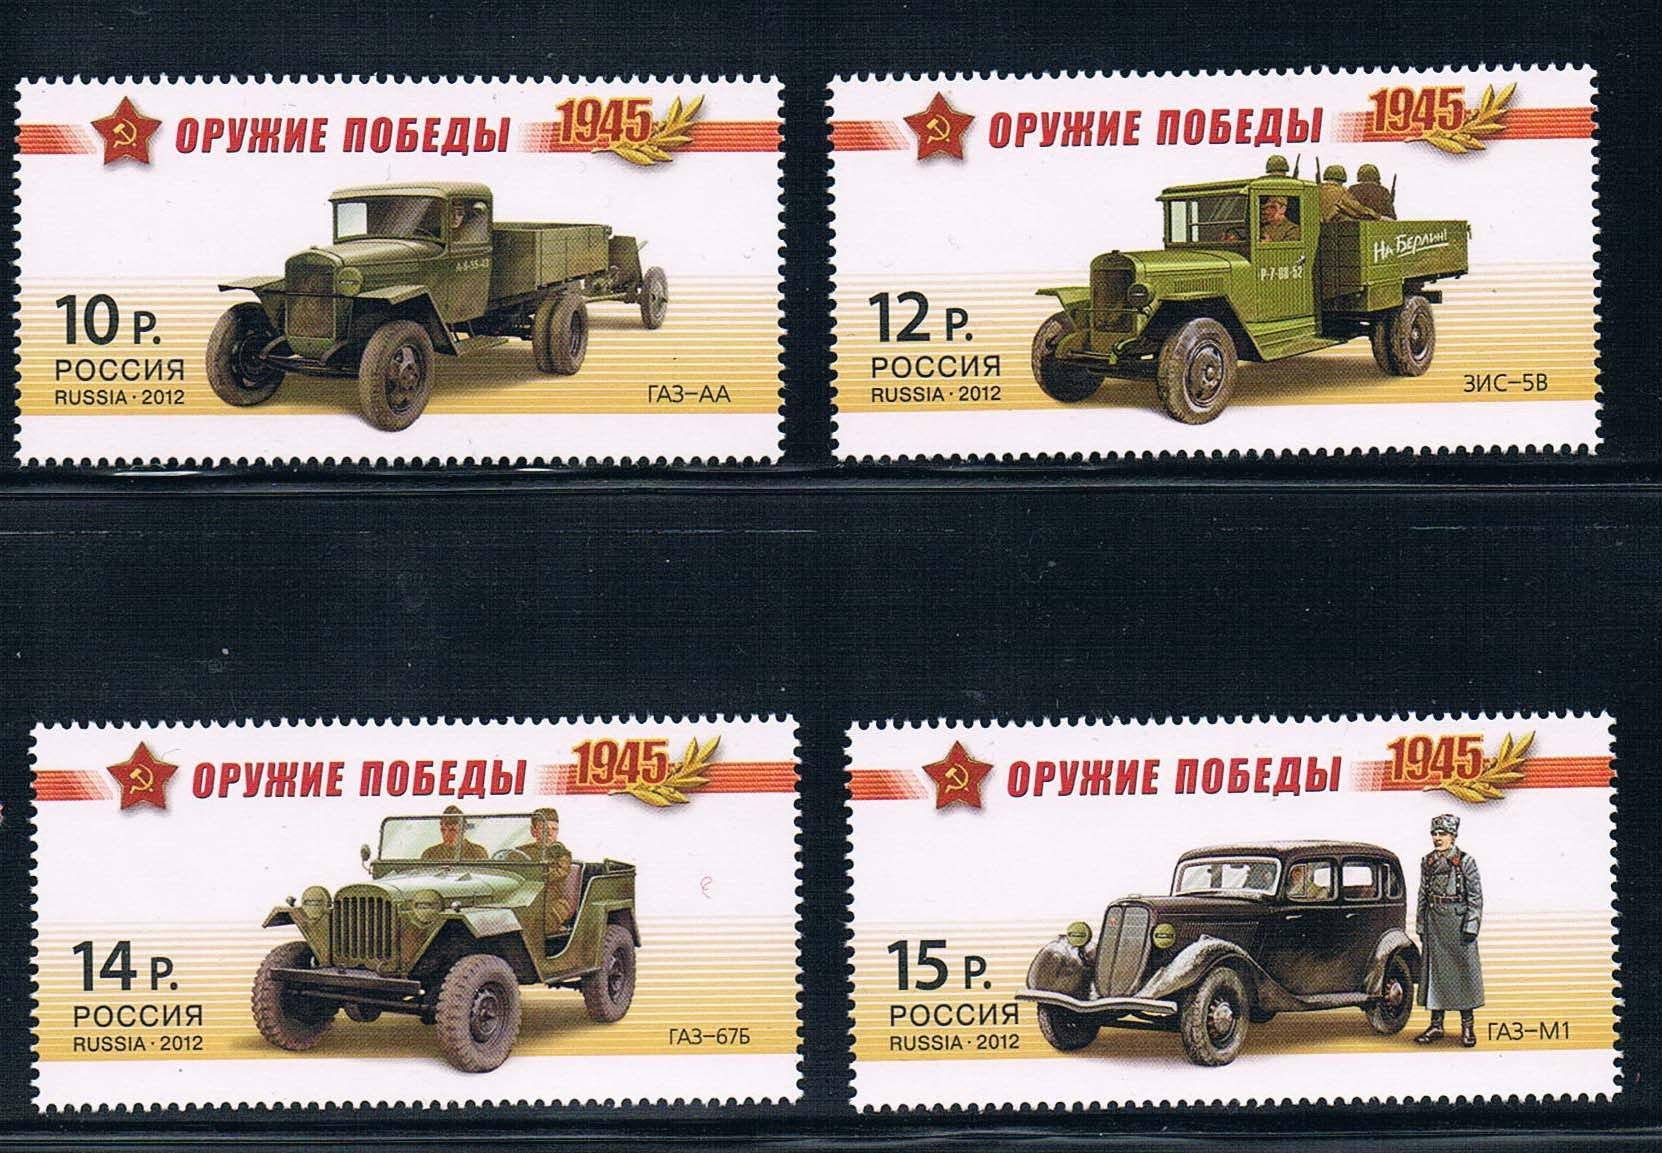 RU1280 2012 Russian weapons of World War II stamps 4 new 0712 car russian origins of the first world war